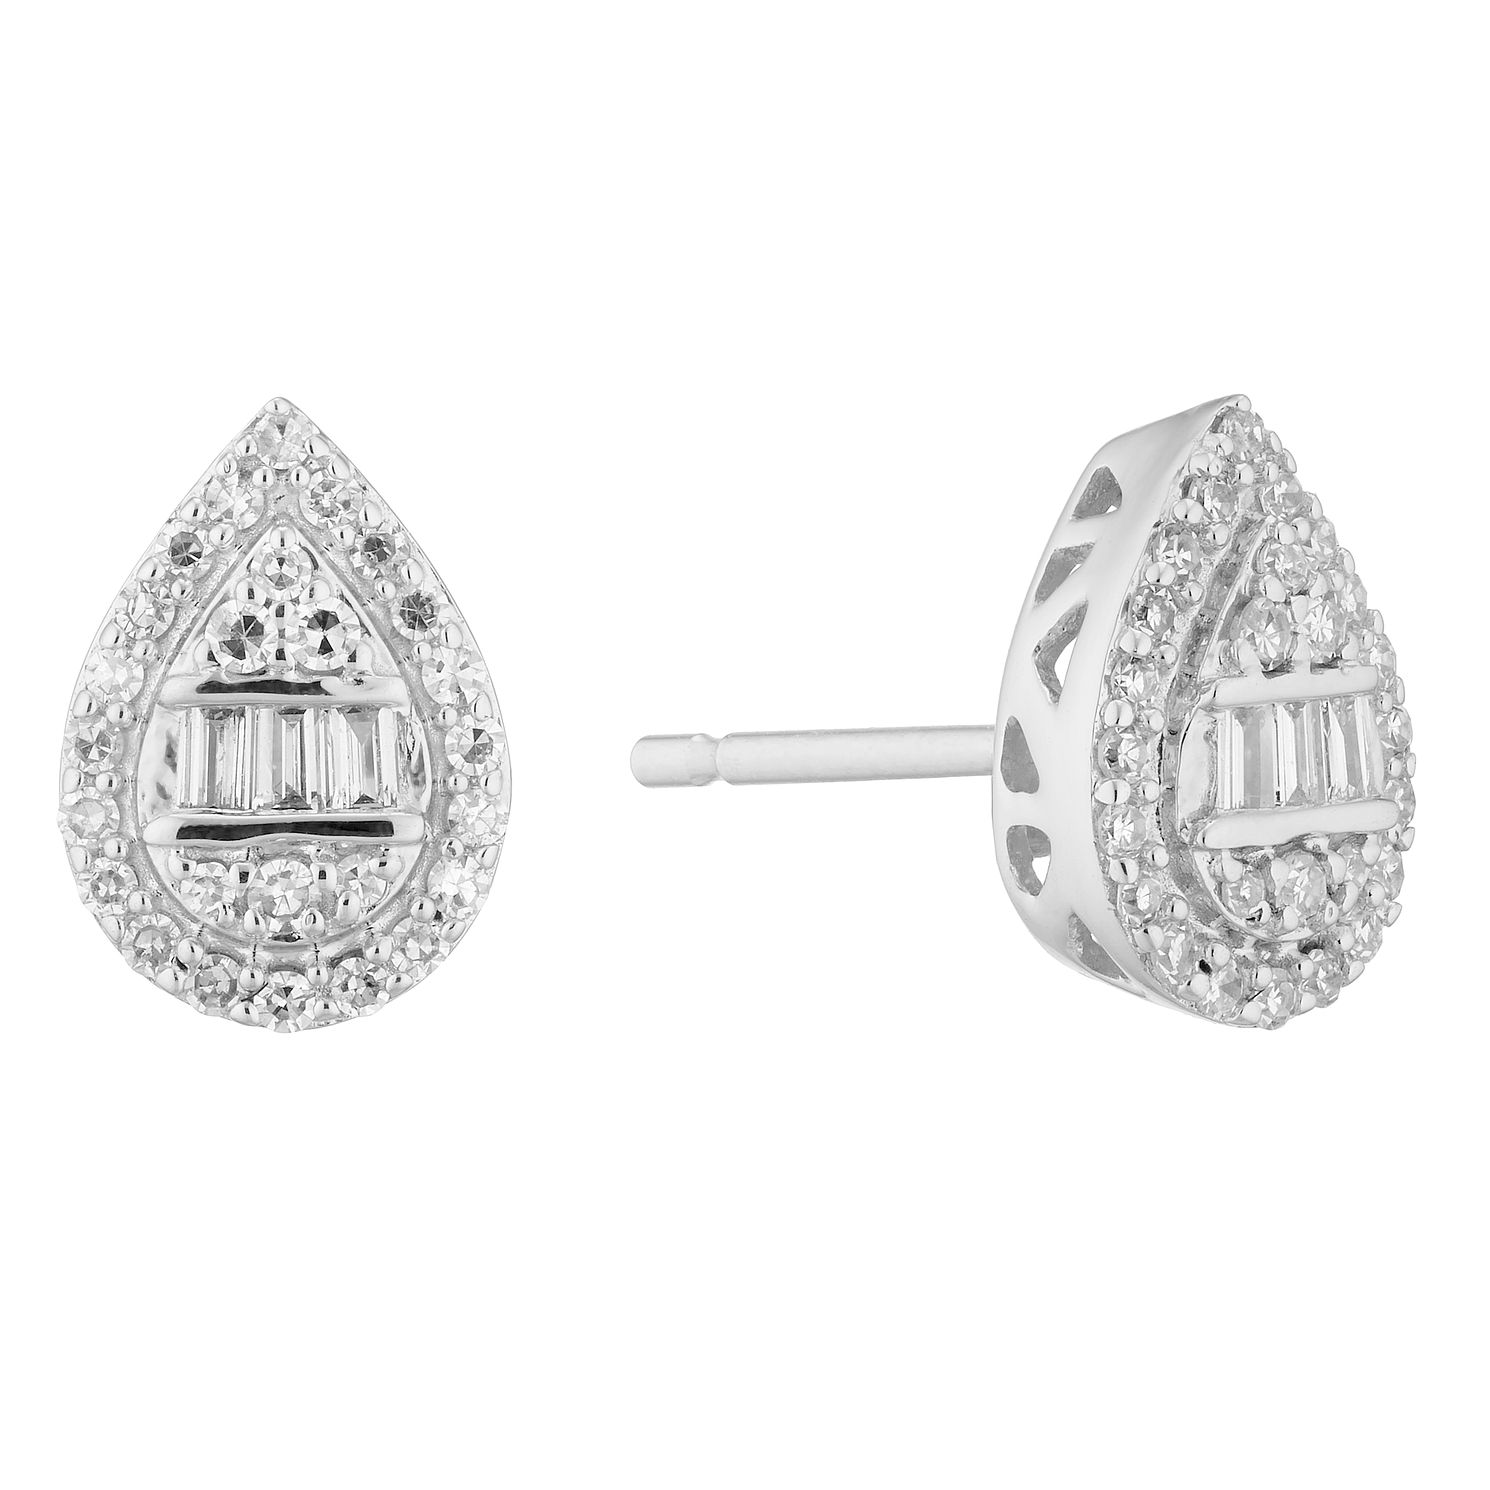 9ct White Gold 0.20ct Total Diamond Mixed Cut Pear Earrings - Product number 5961920